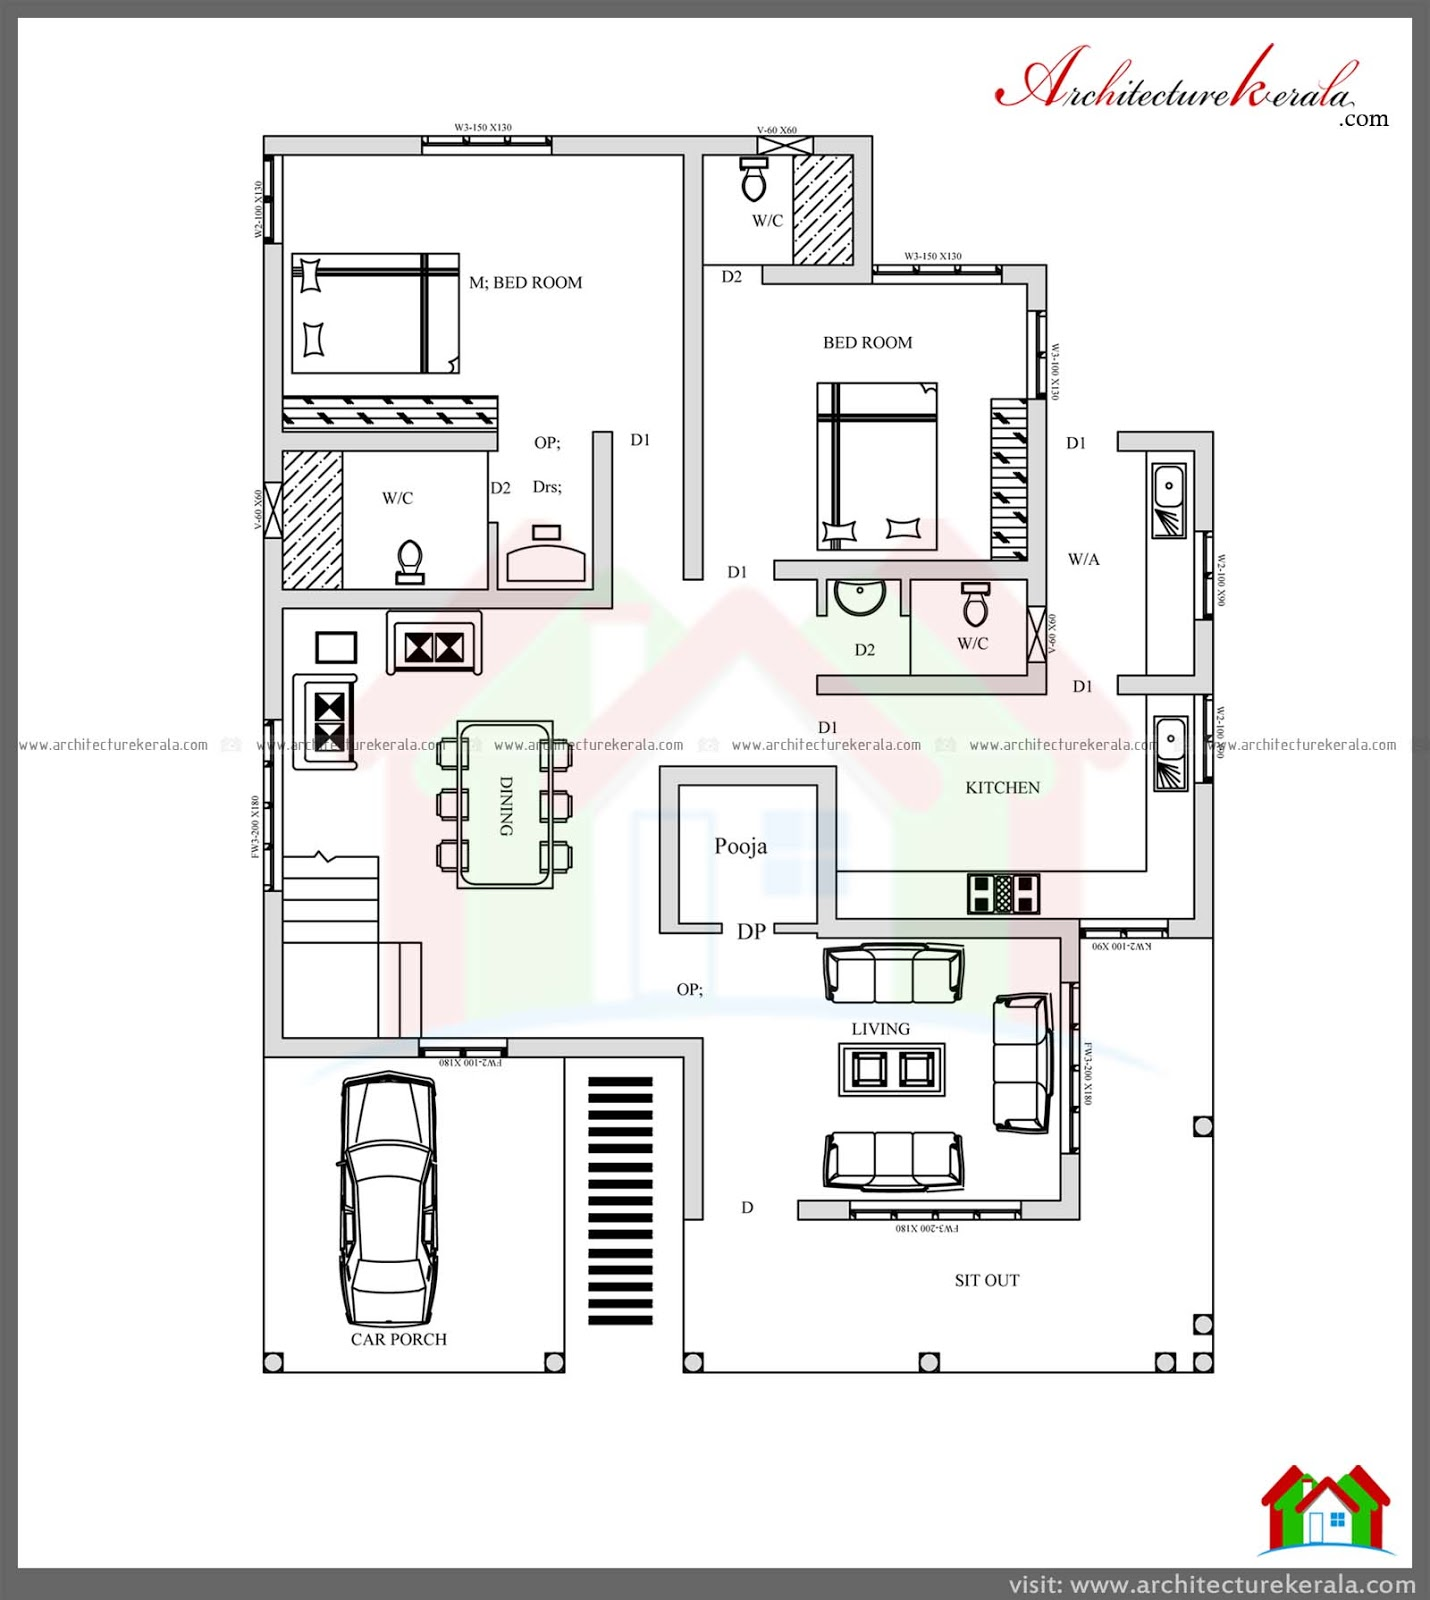 4 bed house plan with pooja room architecture kerala Two room plan